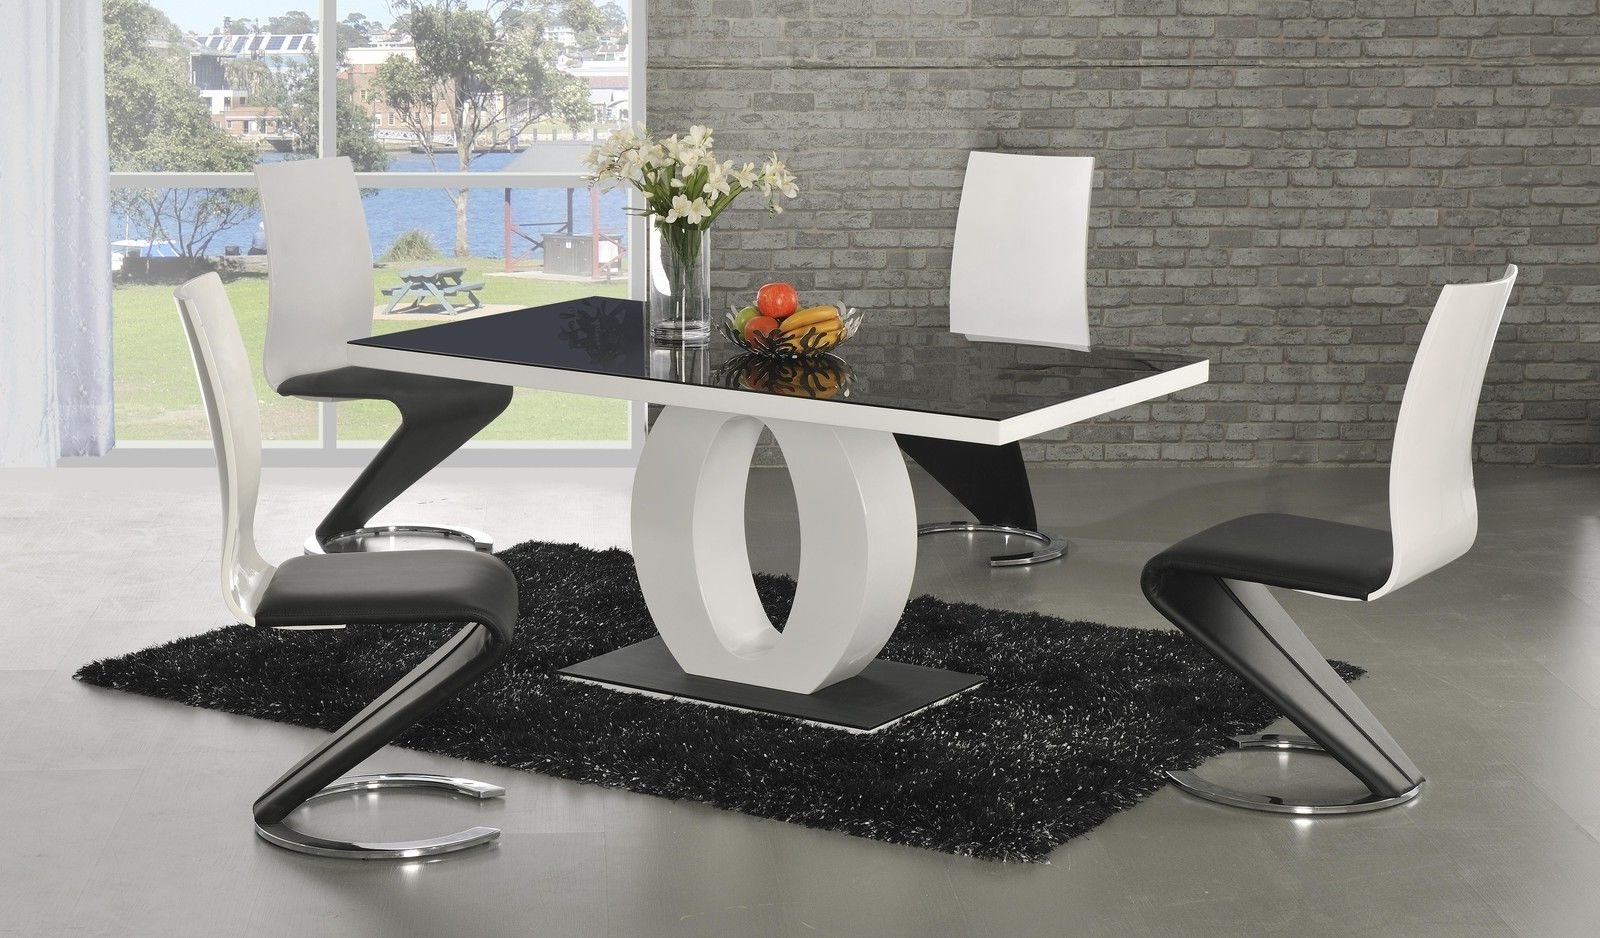 White Gloss Dining Chairs Within Fashionable Ga Angel Black Glass White Gloss 160 Cm Designer Dining Set 4 6 Z (View 22 of 25)